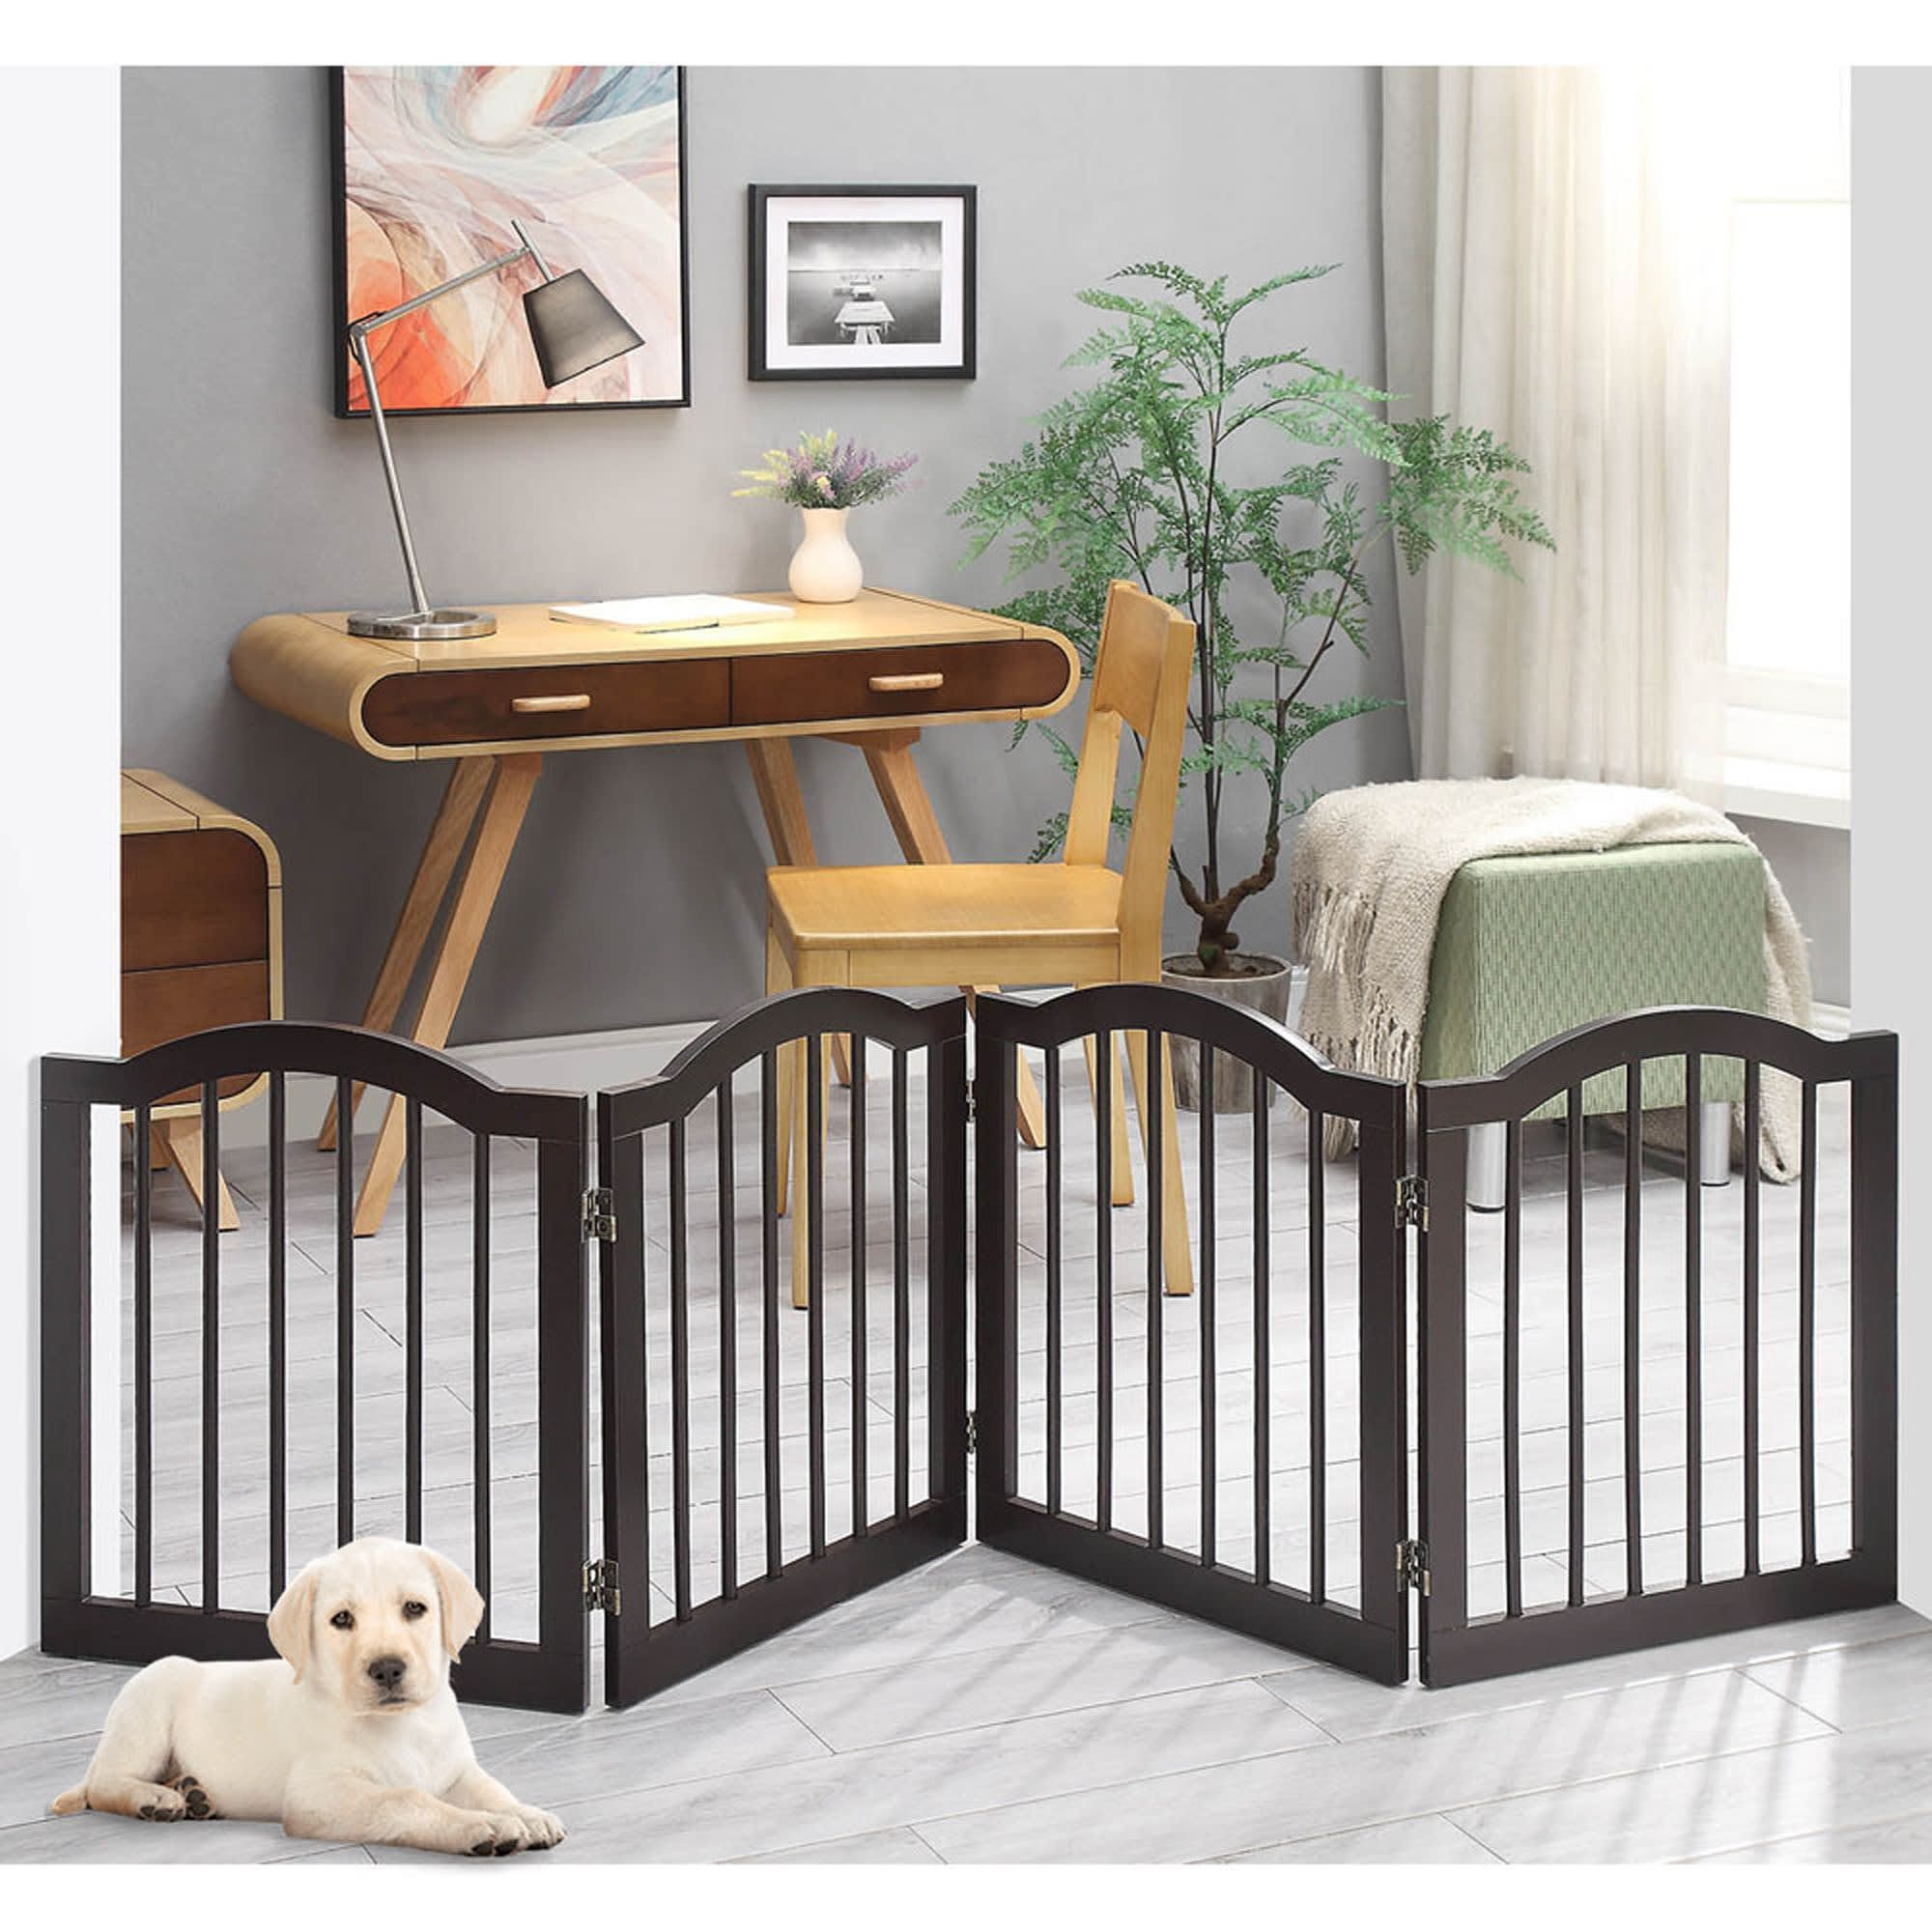 Unipaws Arched Top 4 Panel Dog Gate Espresso Freestanding 20 80